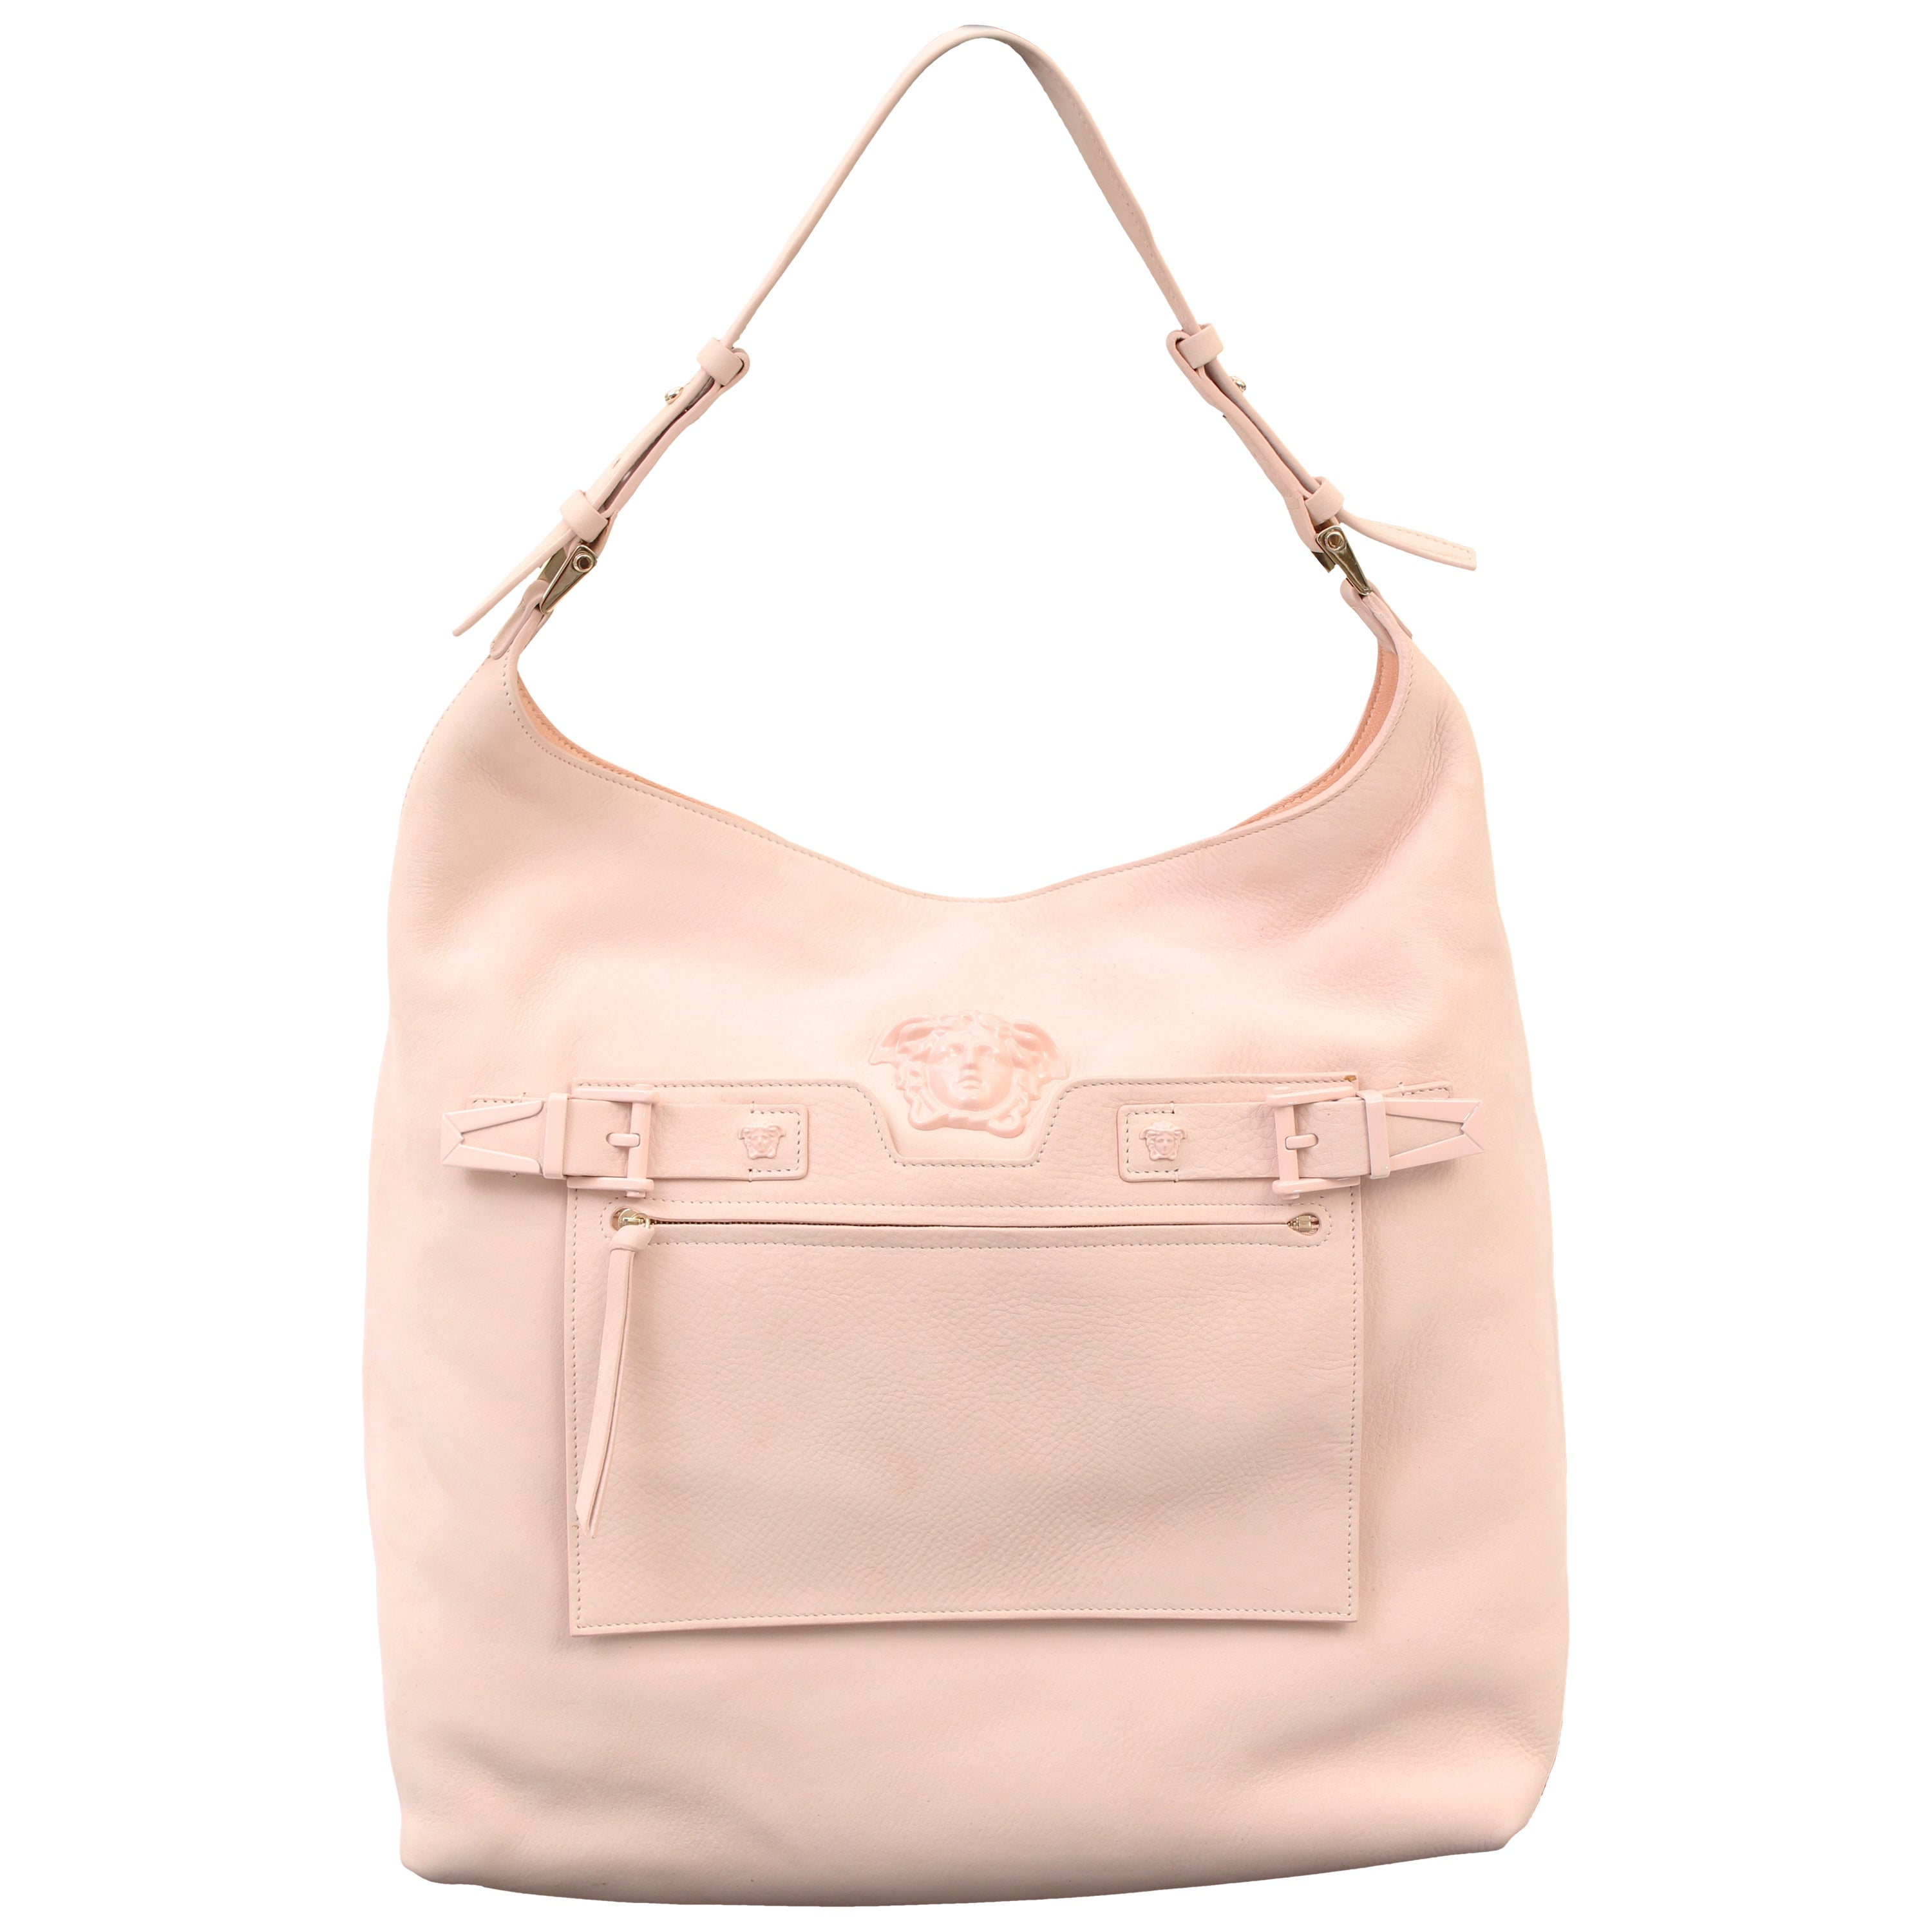 1860859106f New VERSACE PALAZZO OVERSIZED SHOULDER BAG IN POWDER PINK DEER LEATHER For  Sale at 1stdibs